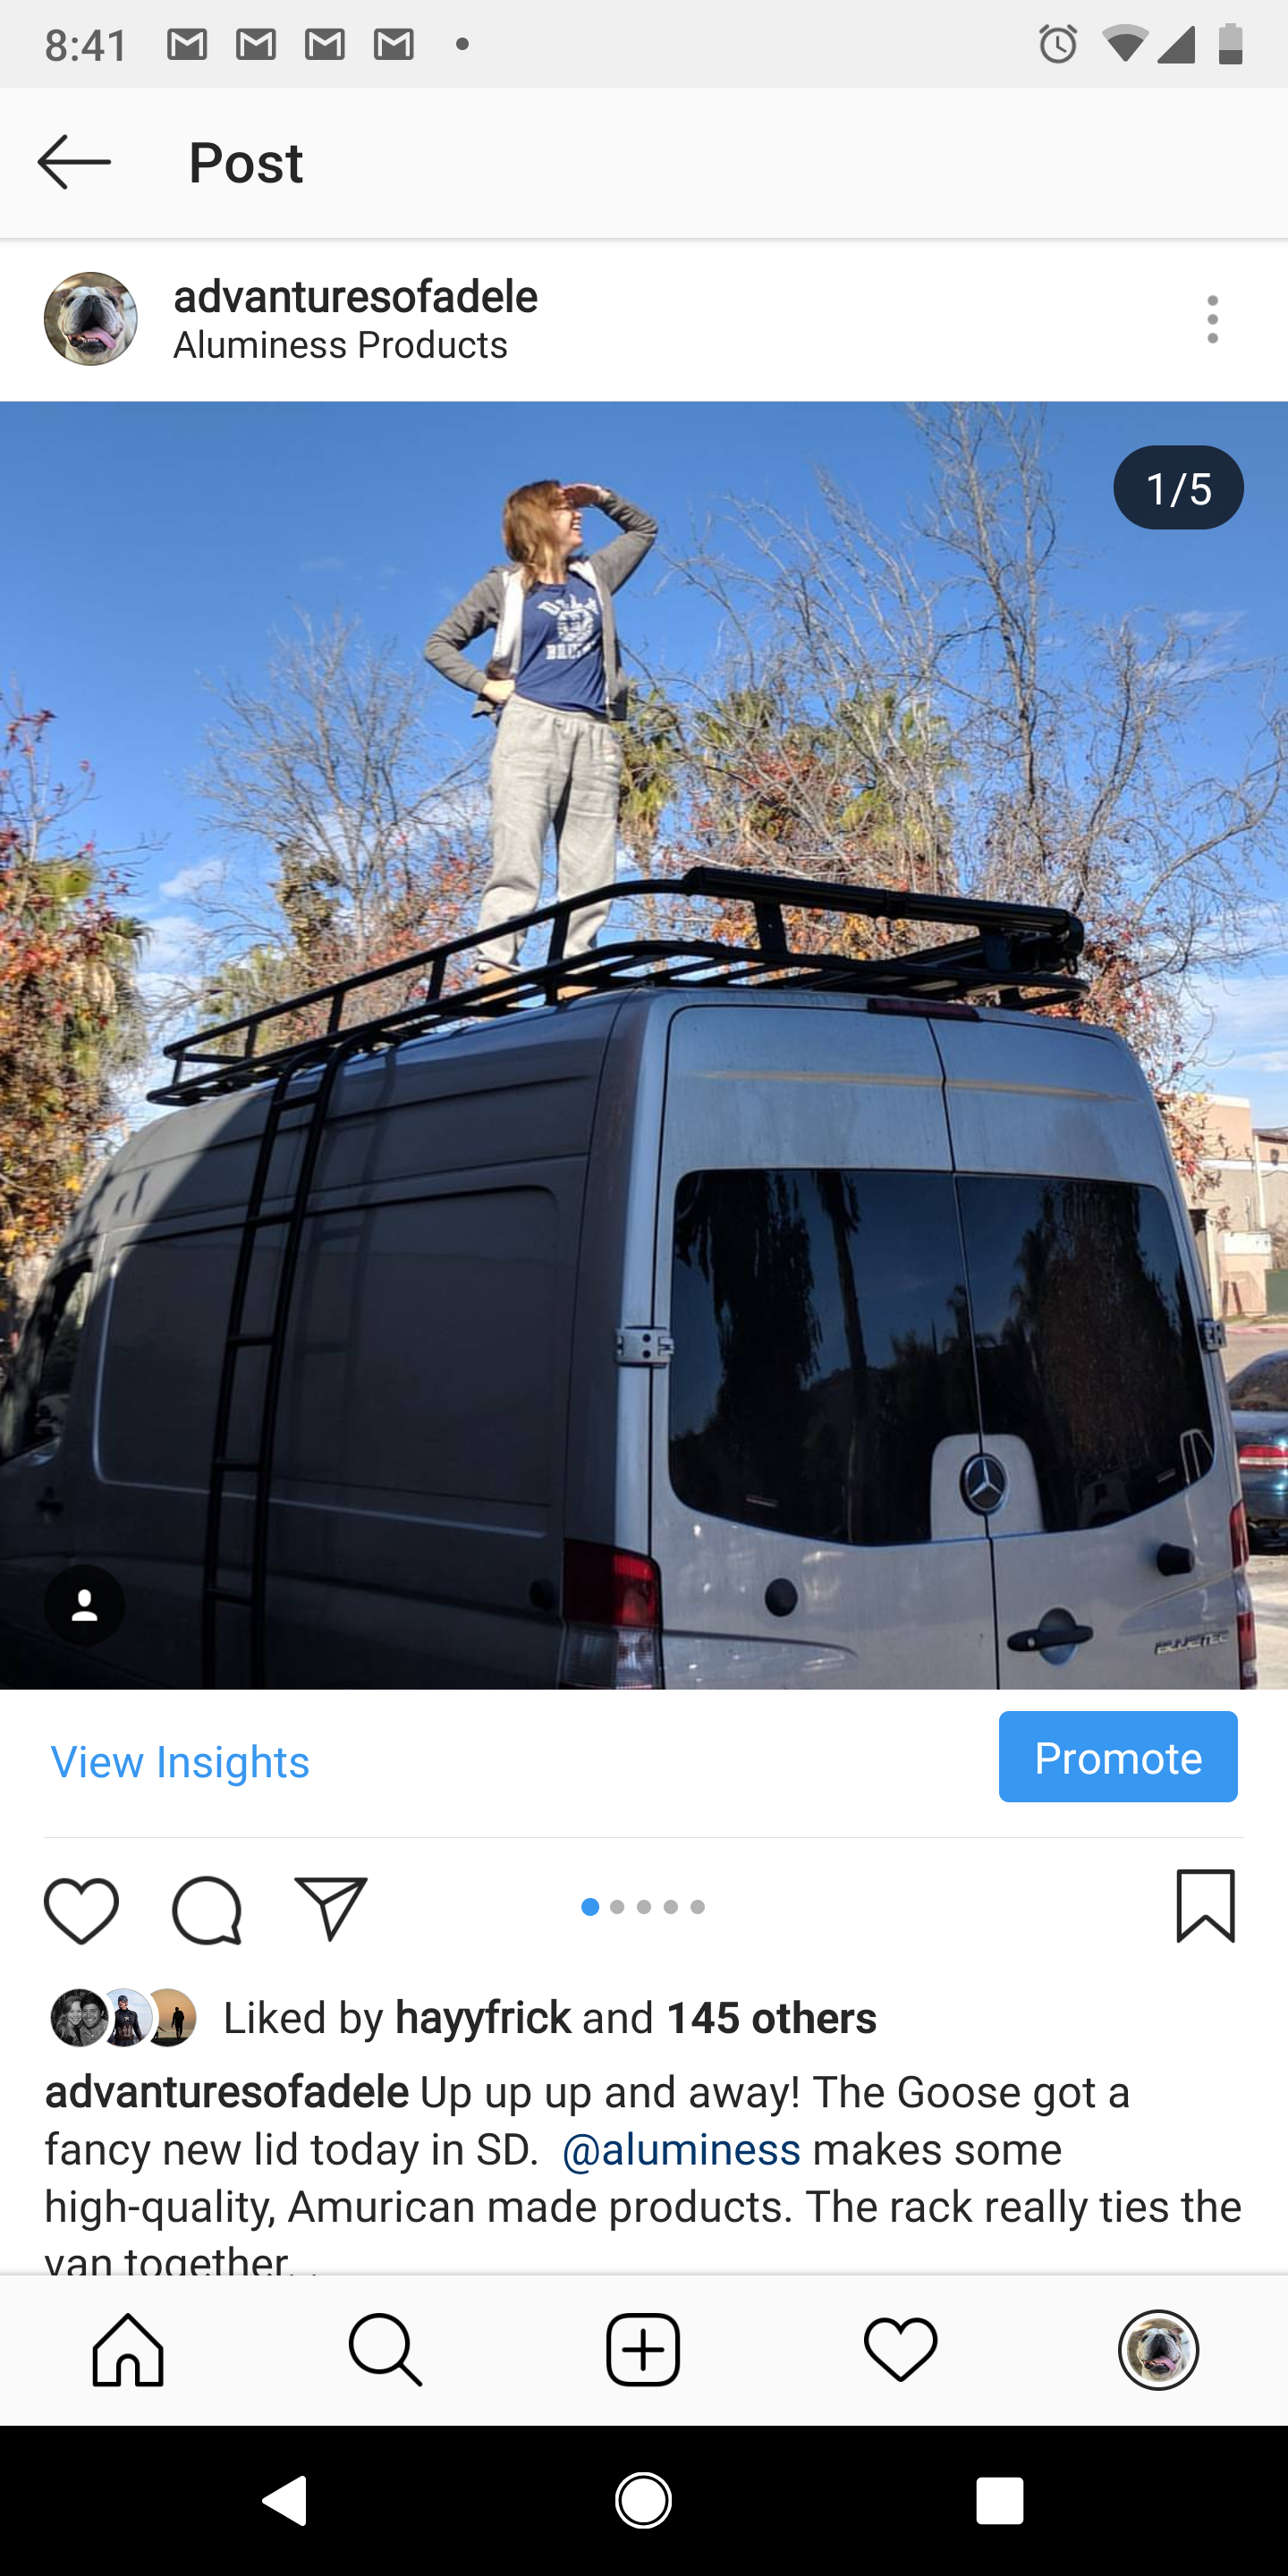 Aluminess Roof Rack with Boat Rollers for kayaks, surfboards, etc.  We have two Hobie Mirage Drive (foot peddle) kayaks we can also rent if you want to get out on the water.  . Mercedes-Benz Sprinter 2016